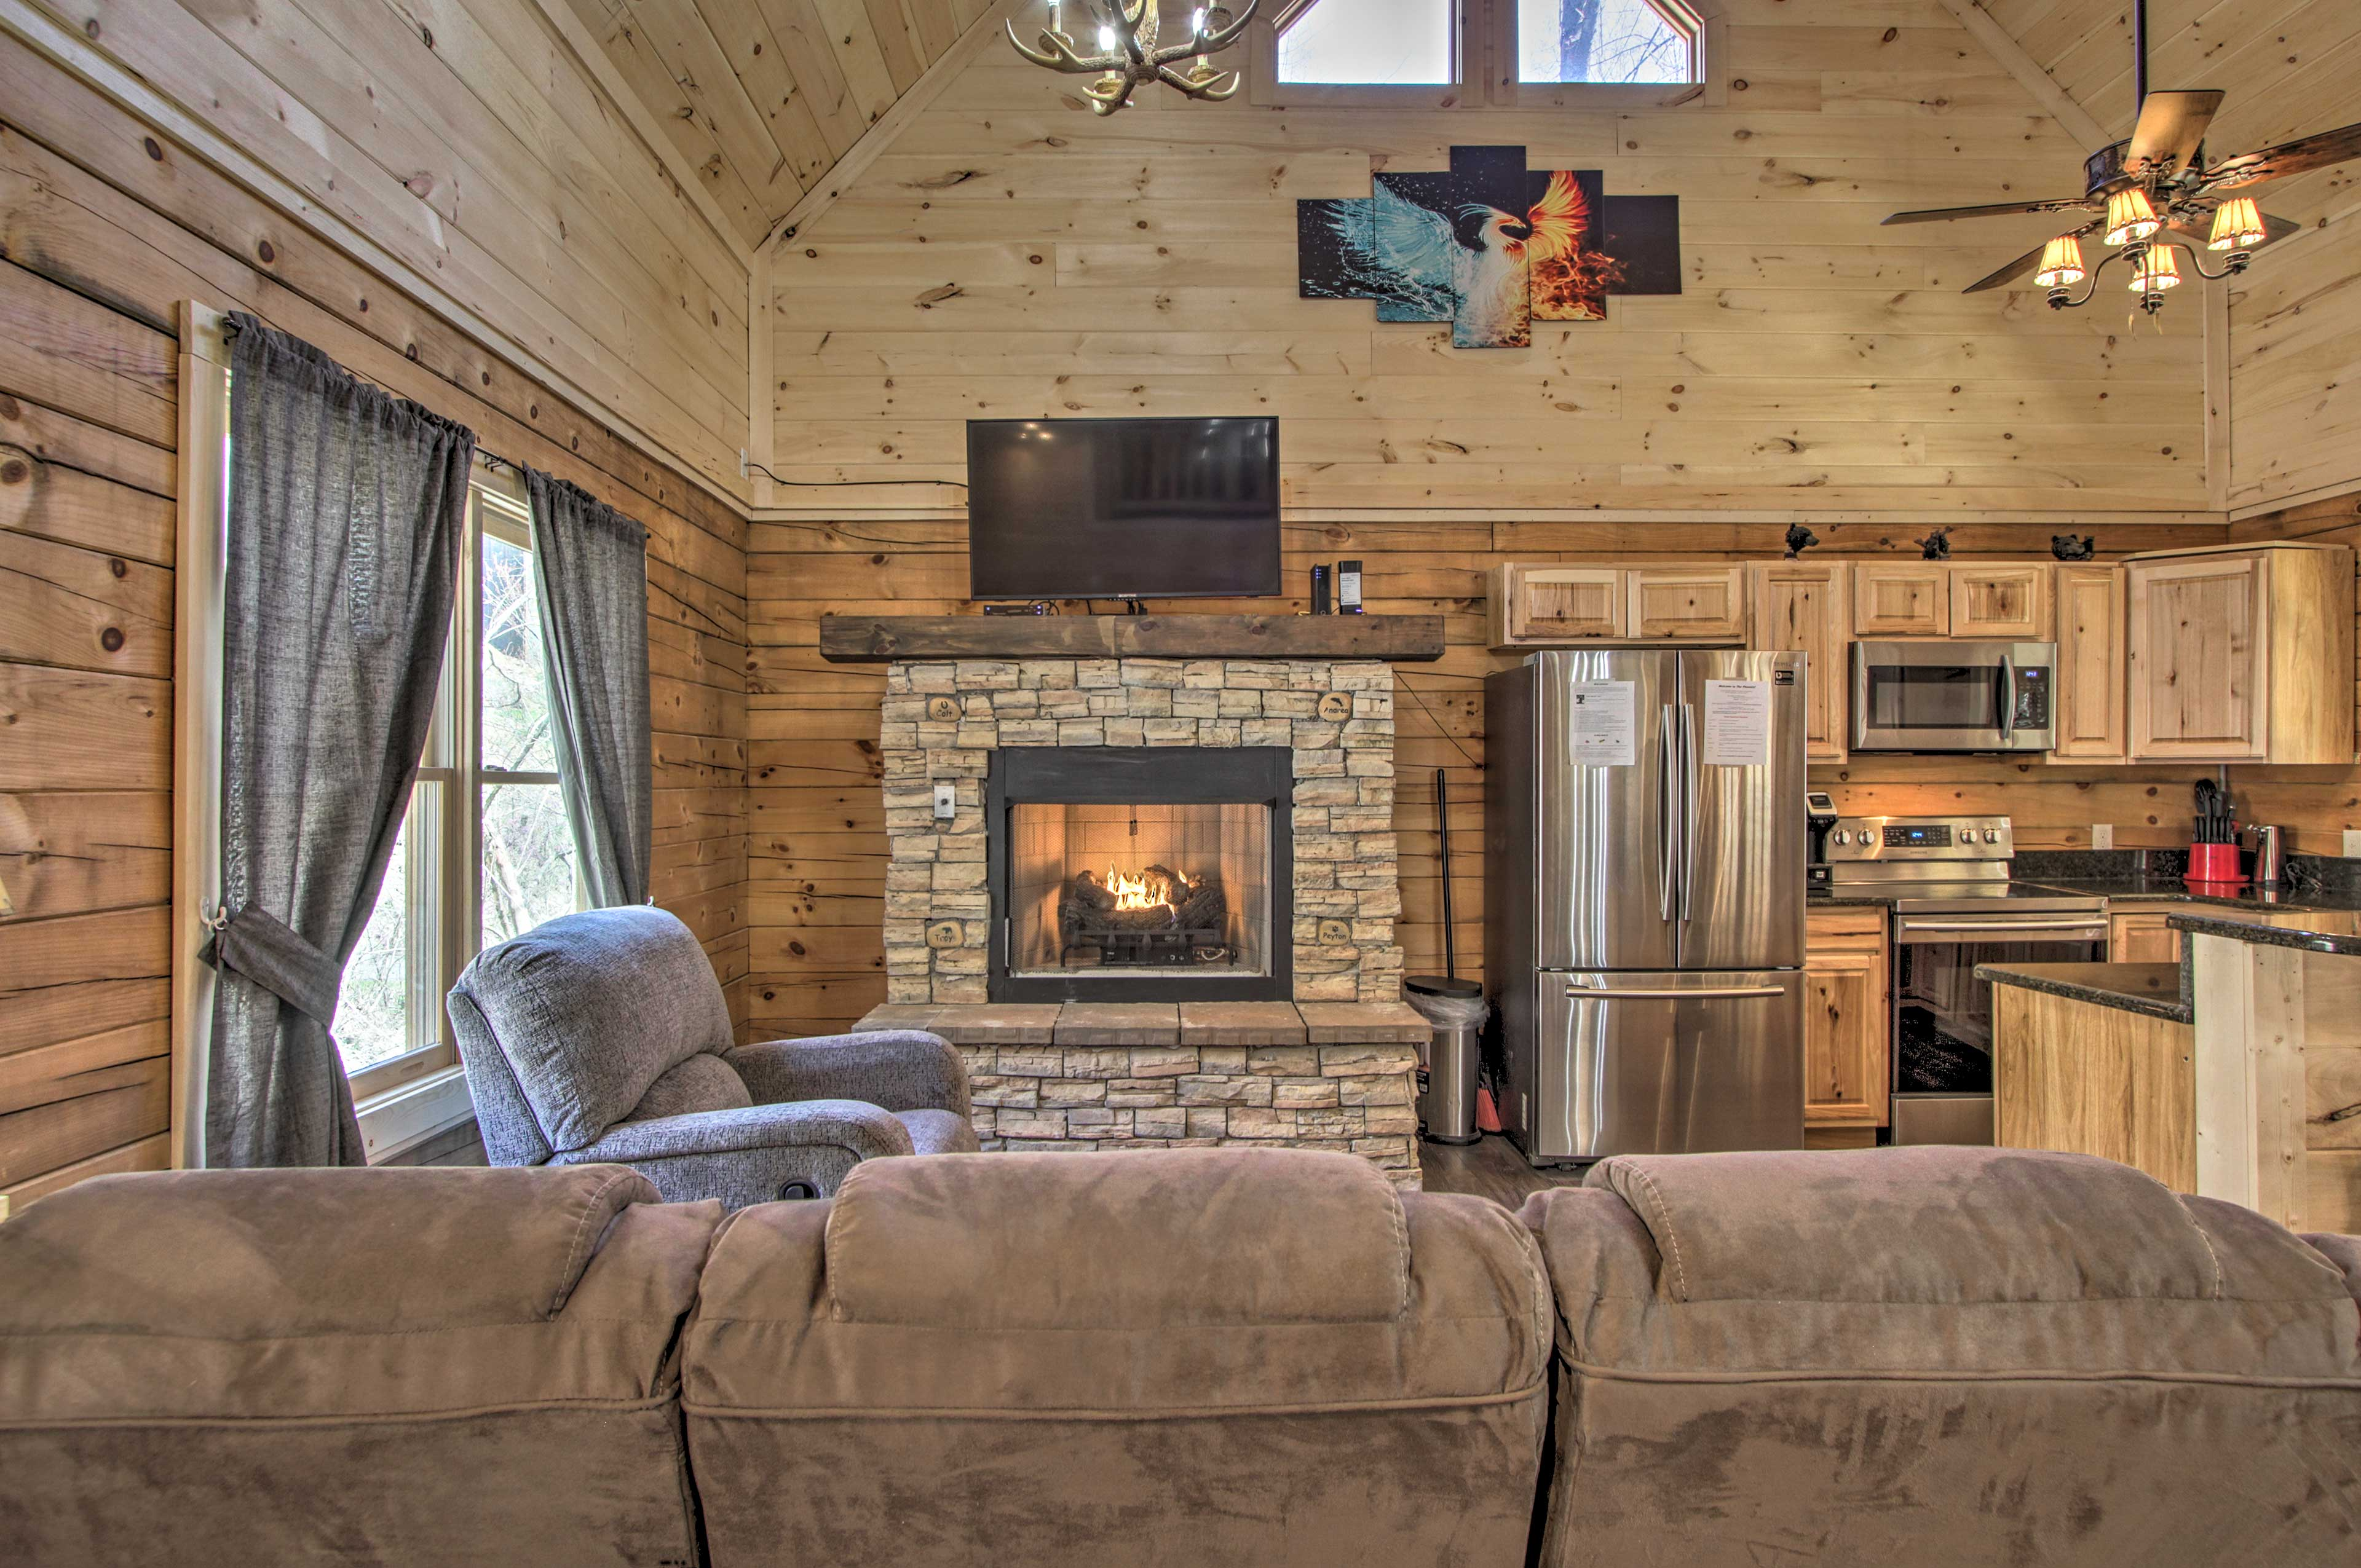 Don't forget to start up the fireplace to warm up in the living room.